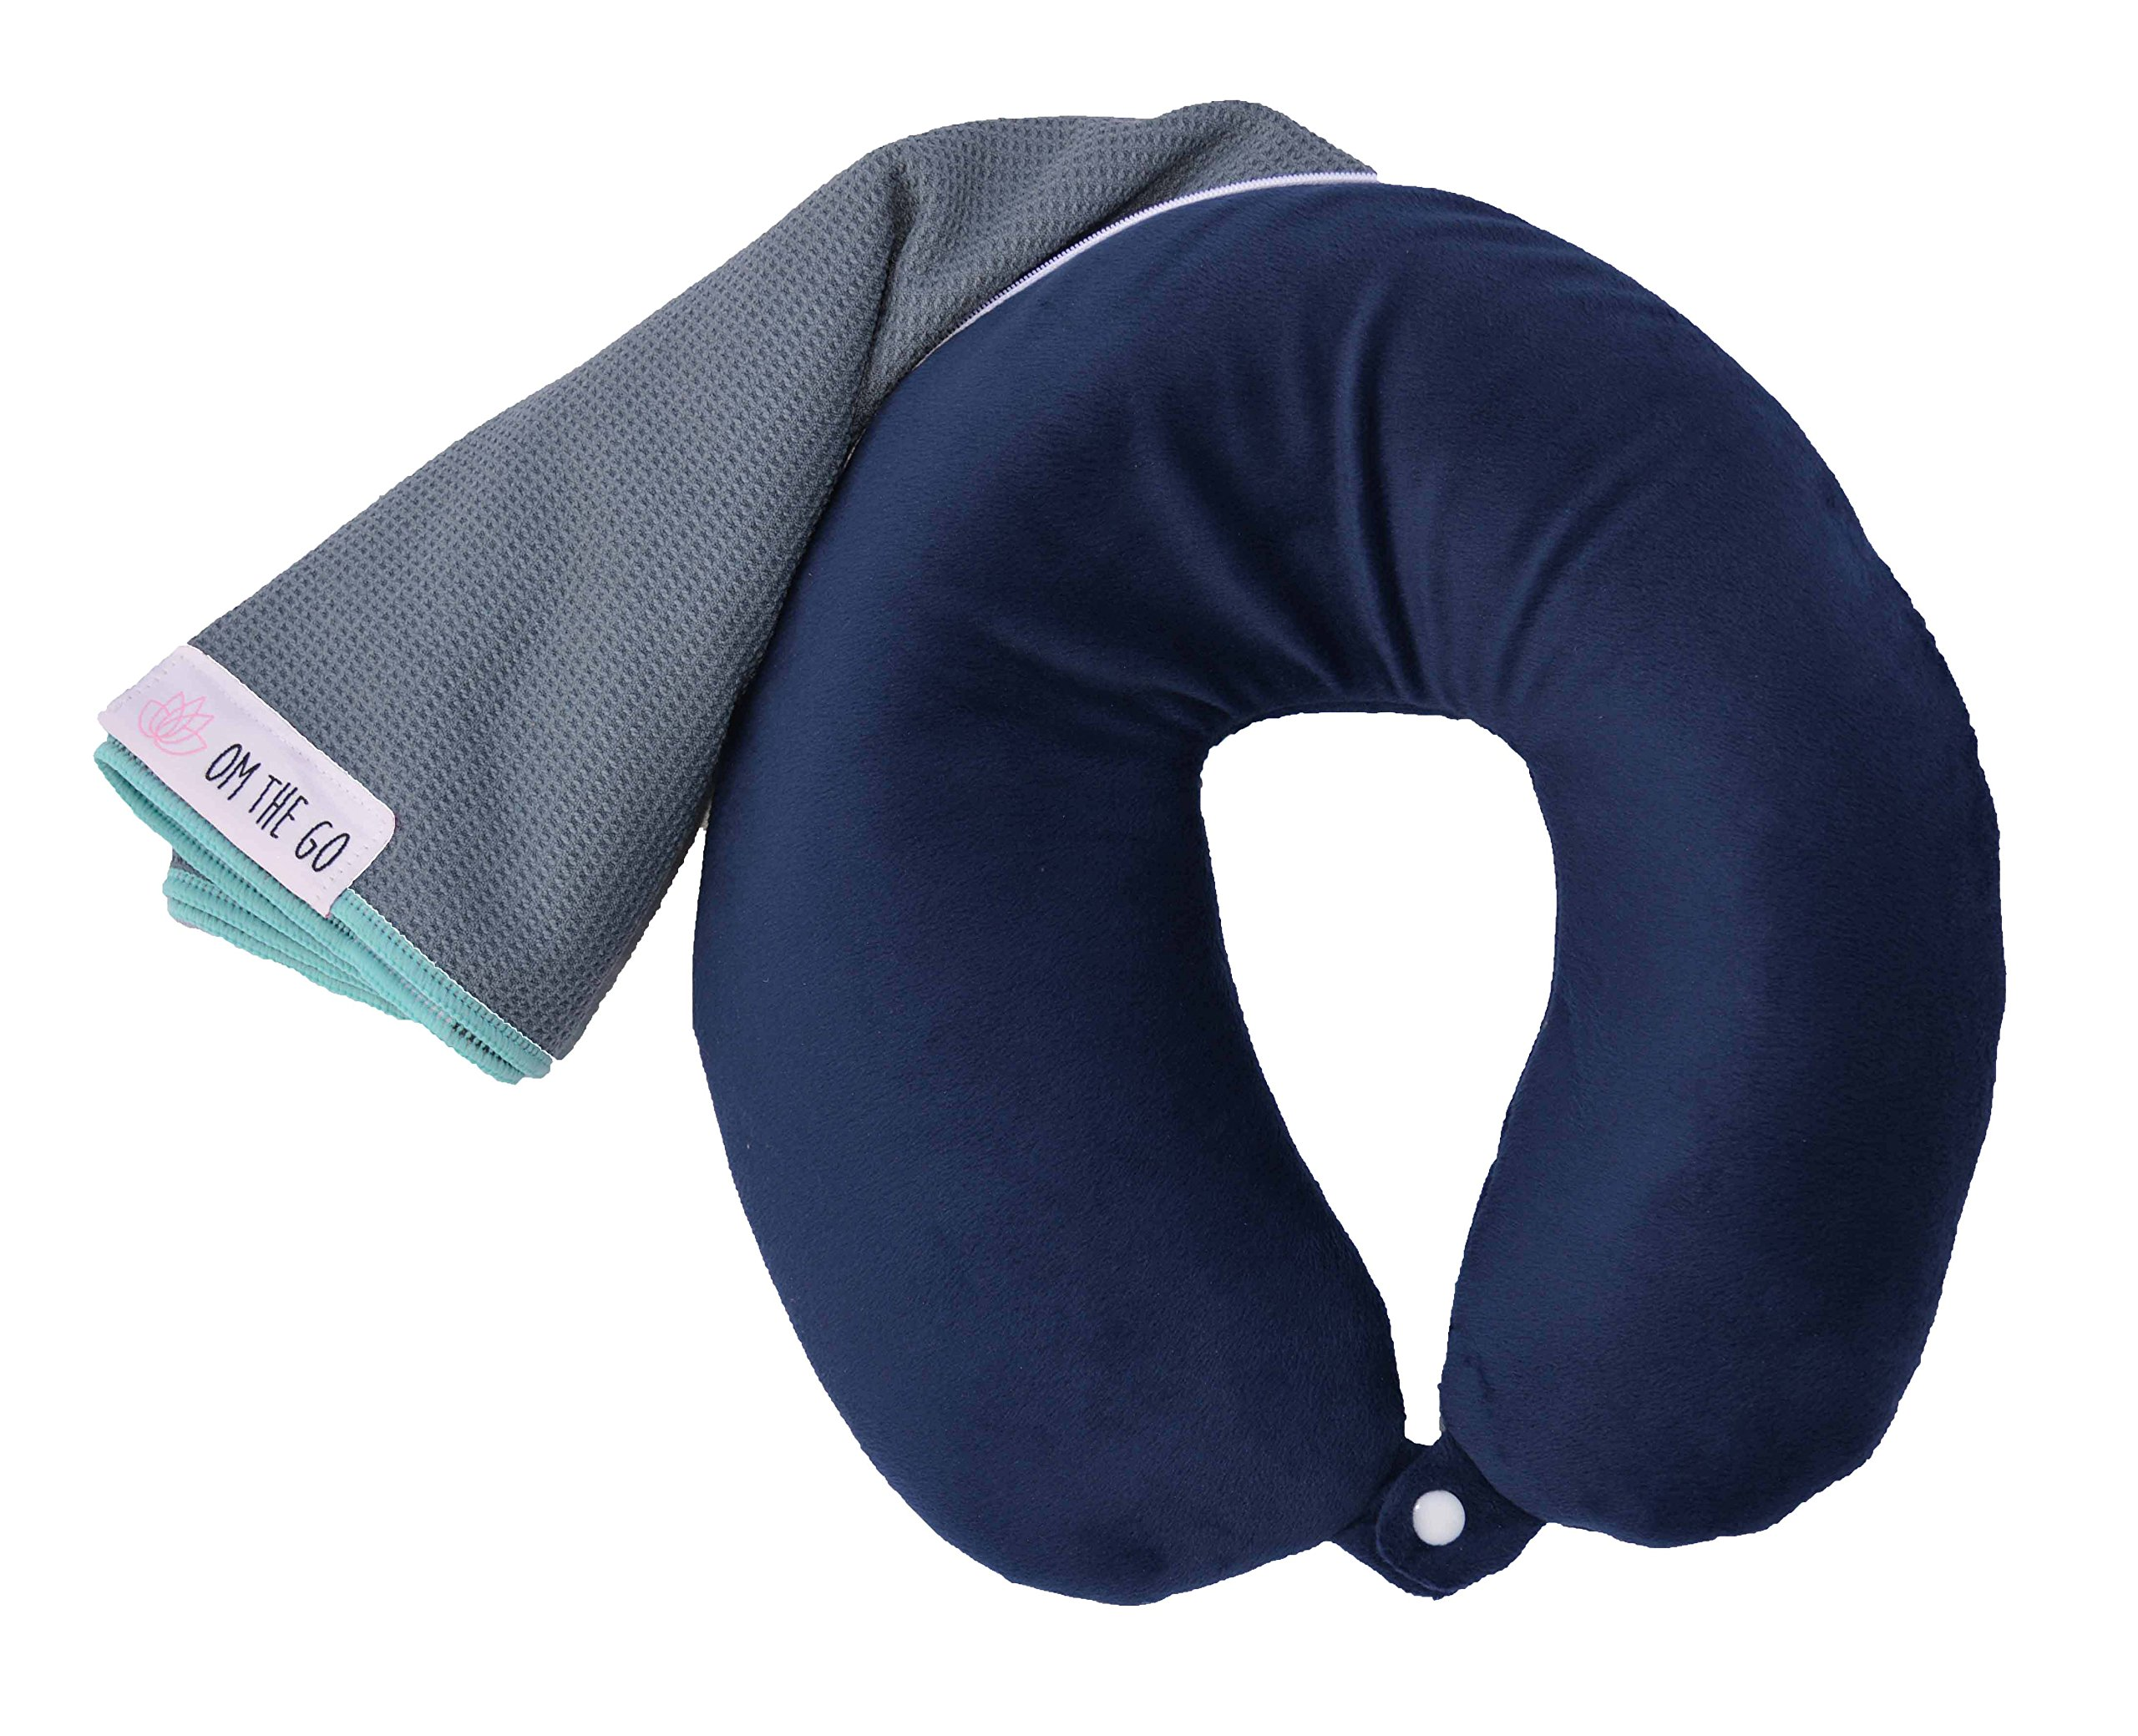 Om the Go Asana Pillow - 2-in-1 Neck Pillow and Travel Yoga Mat by Om the Go